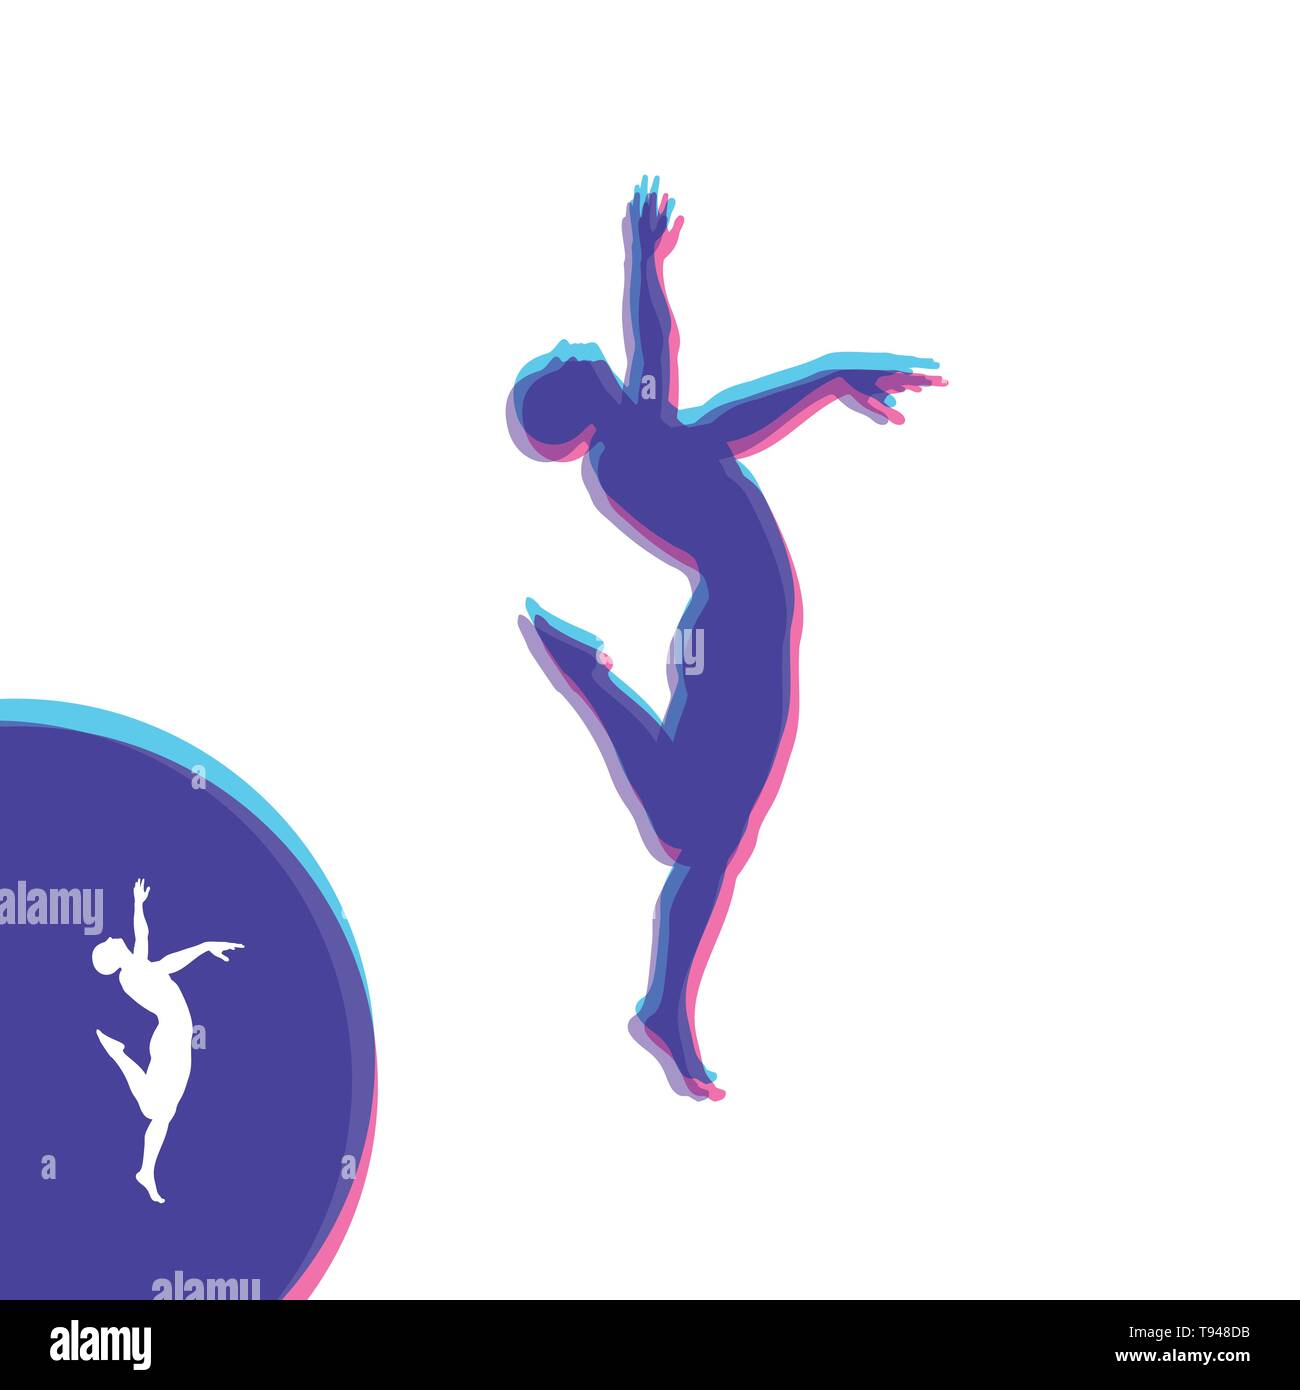 Silhouette of a Dancer. Gymnast. Man is Posing and Dancing. Sport Symbol. Design Element. Vector Illustration. - Stock Vector